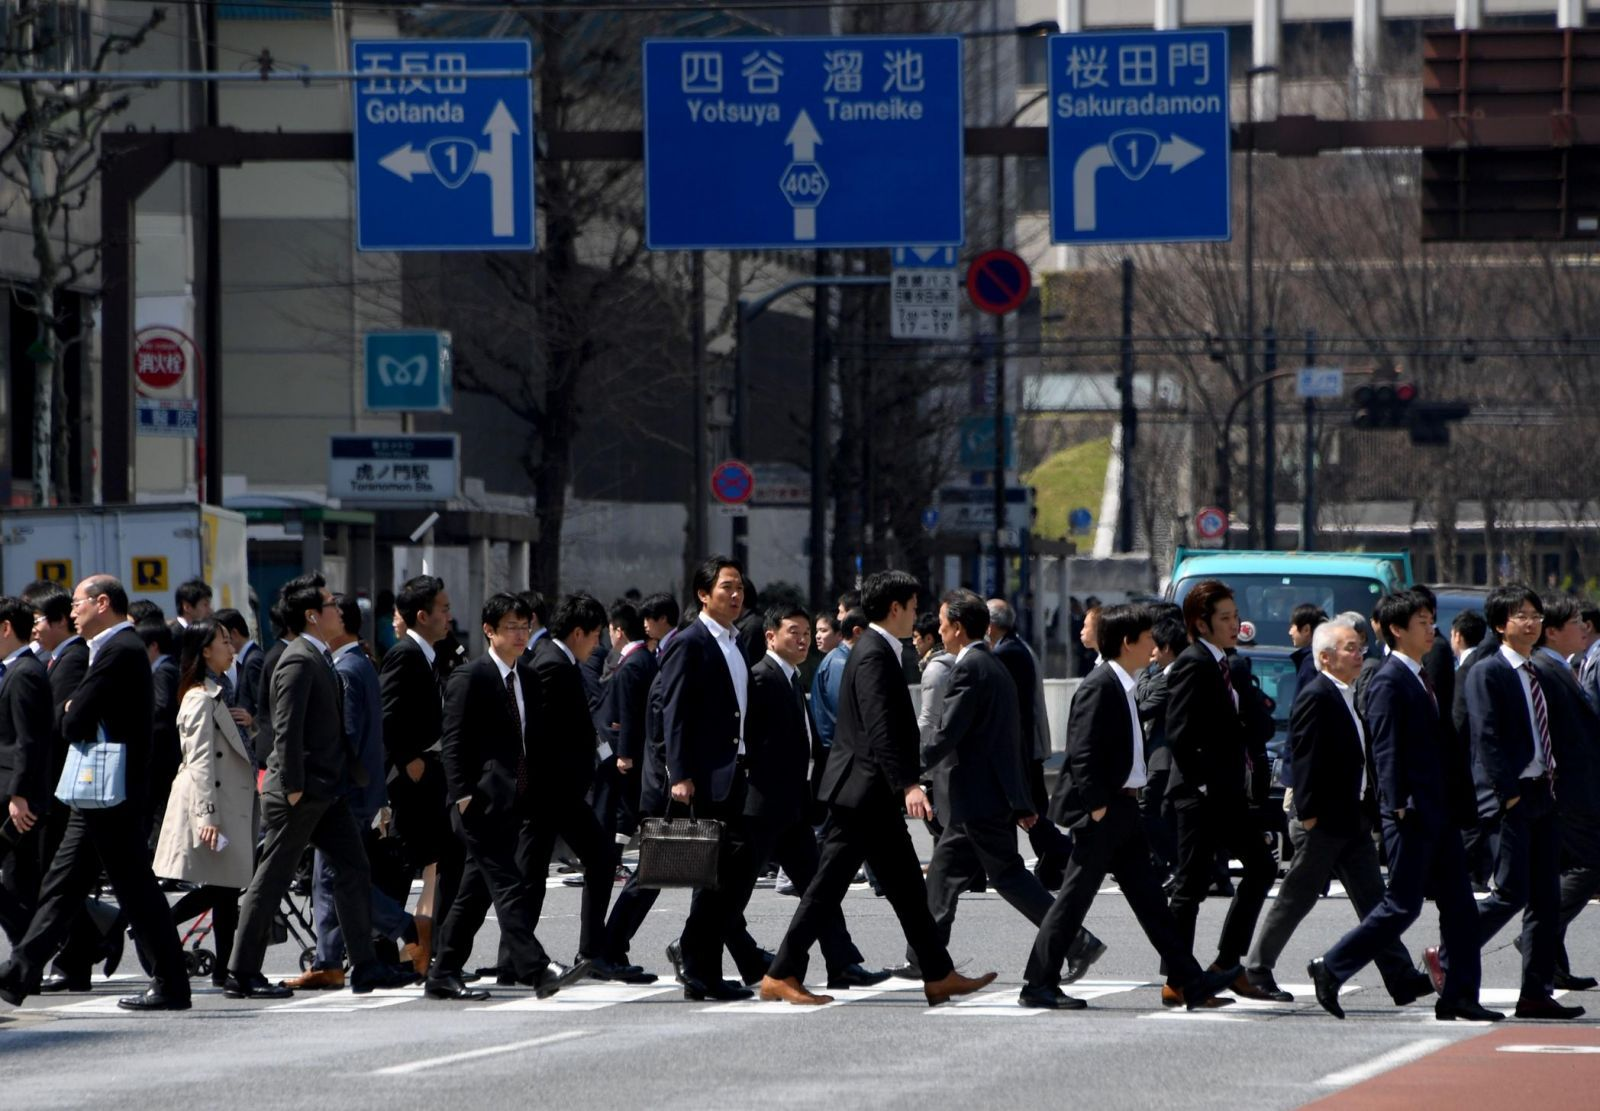 Japan's jobless rate rises for 1st time in 11 years in 2020 amid pandemic